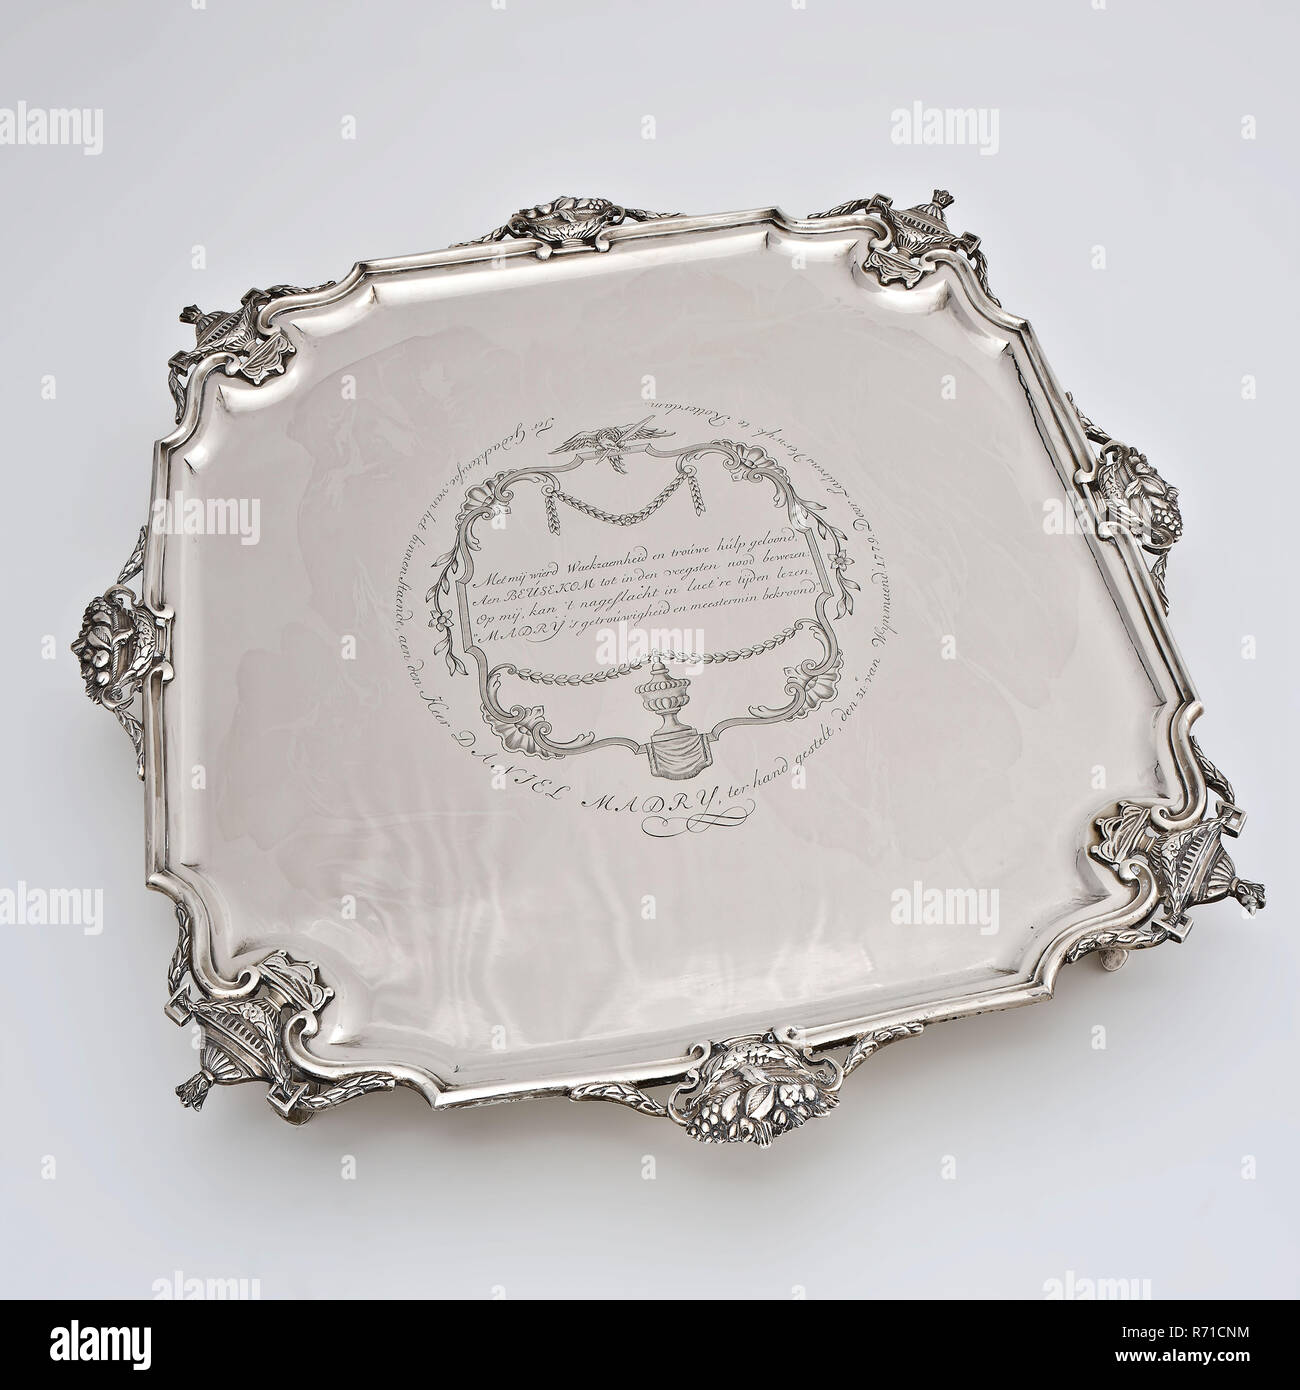 Silversmith: Douwe Eysma, Silver tray on legs with inscription, tray leaf holder silver, cast engraved Square leaf with bevelled corners on four smooth legs bottom bottom (smashed) Rotterdam Scheepmakershaven tobacco fire serve remember Louis XVI Louis XVI Louis Seize The magazine was Madry (1752-1808) donated because of the help he gave as 27-year-old servant to tobacco dealer Van Beusekom in the rescue of bales of tobacco during the fire at the Scheepmakershaven on 1011 March 1779. - Stock Image